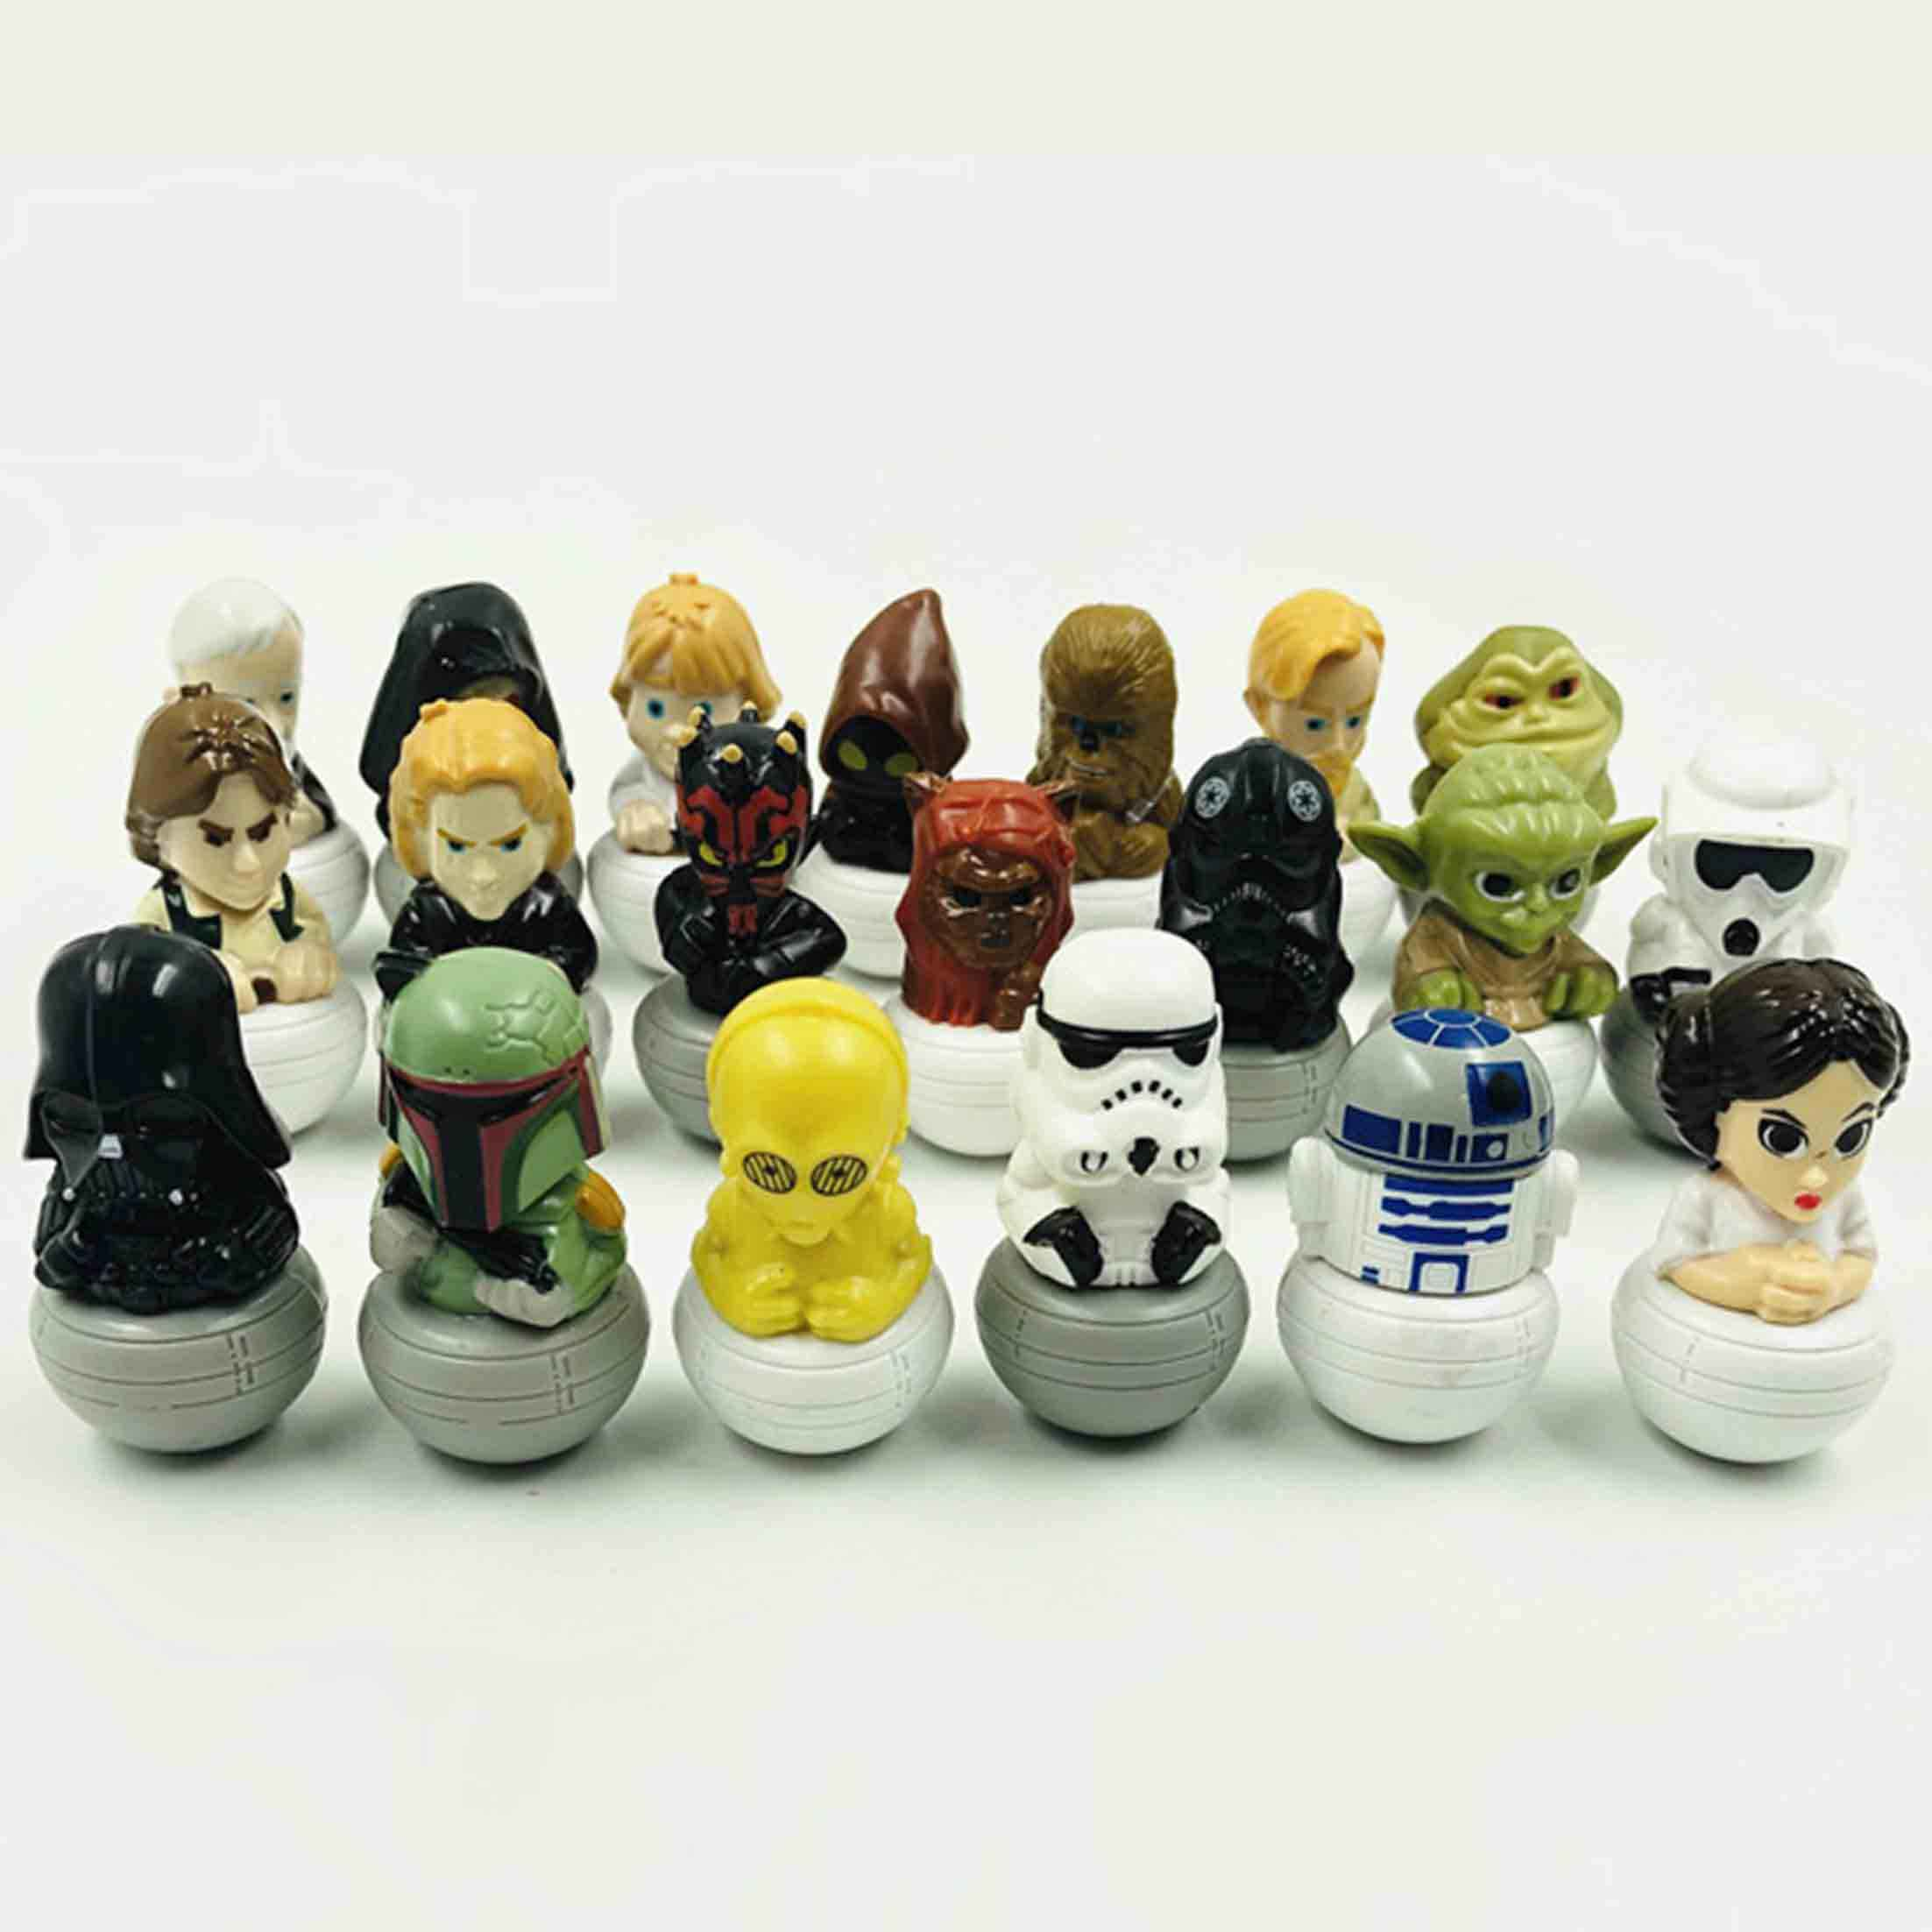 1 pçs/lote modelo Star Wars Han Hano Anakin Darth Vader Yoda de Star Wars Action figure Toys personagens de Star Wars